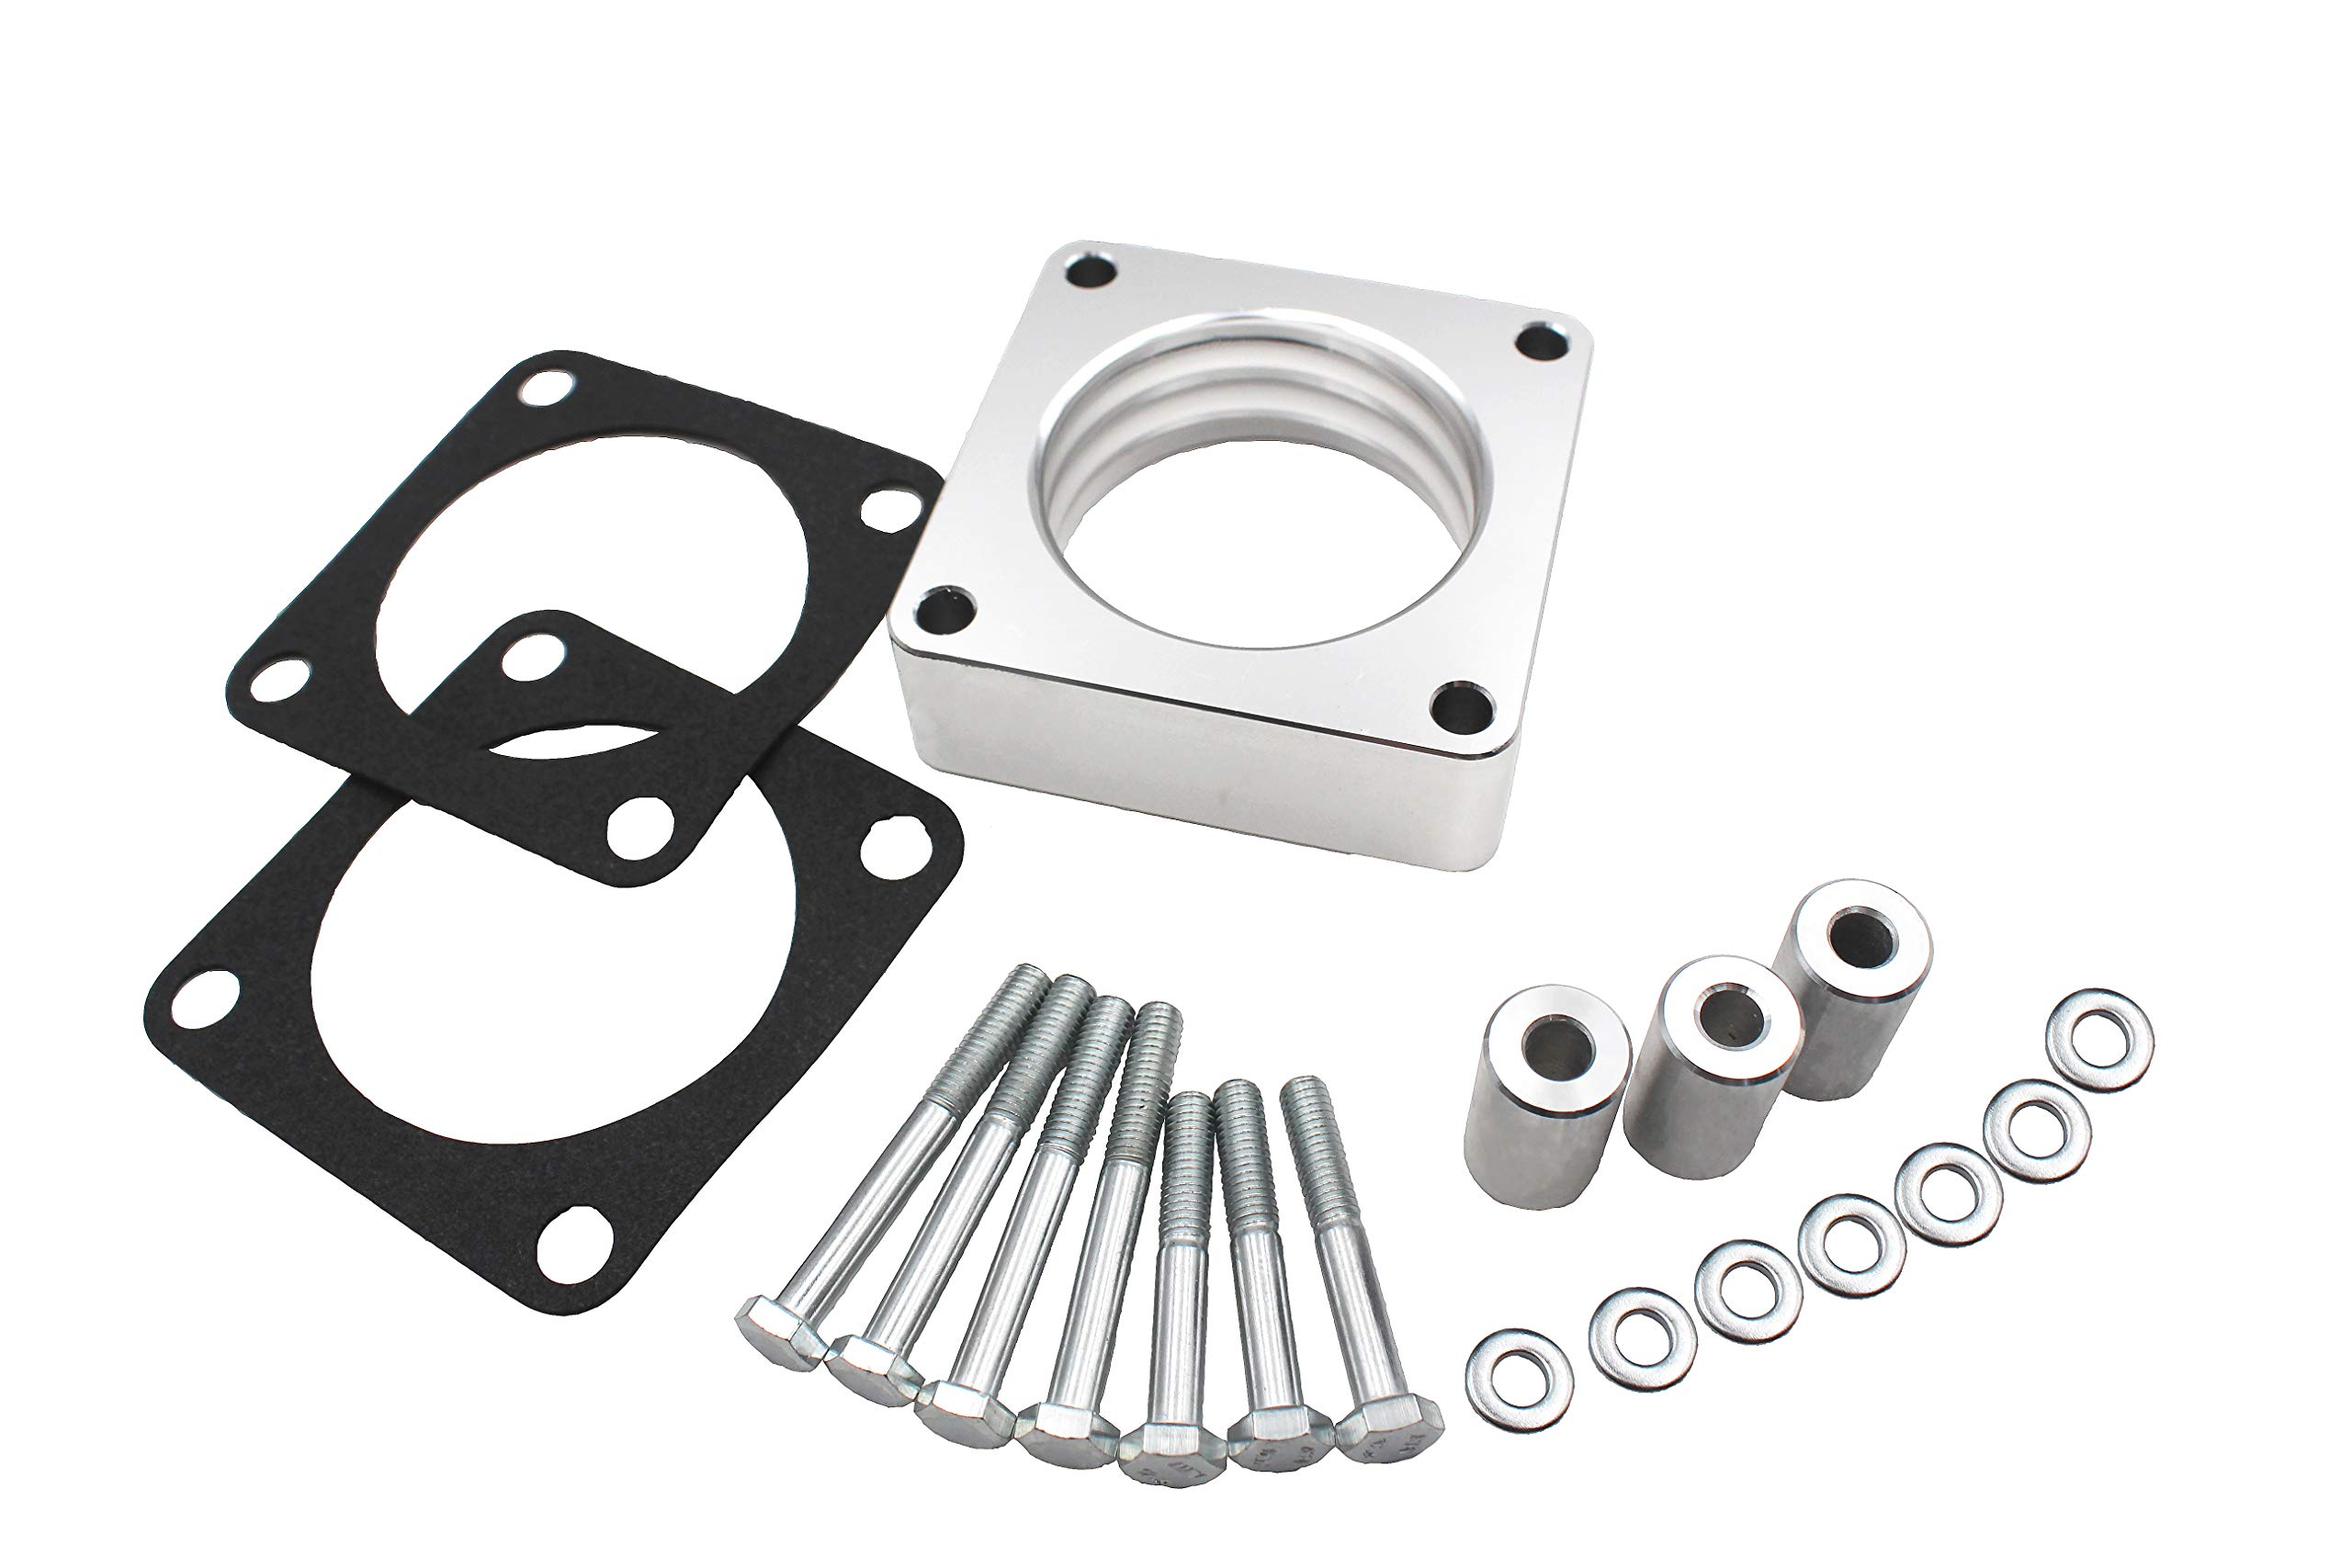 1068 Throttle Body Spacer Only for Select Years: Jeep XJ, Comanche MJ WJ, Grand Cherokee ZJ, Wrangler TJ 4WD,fits models with 4.0L/ 2.5L engines only fits 4-bolt throttle Bodies.